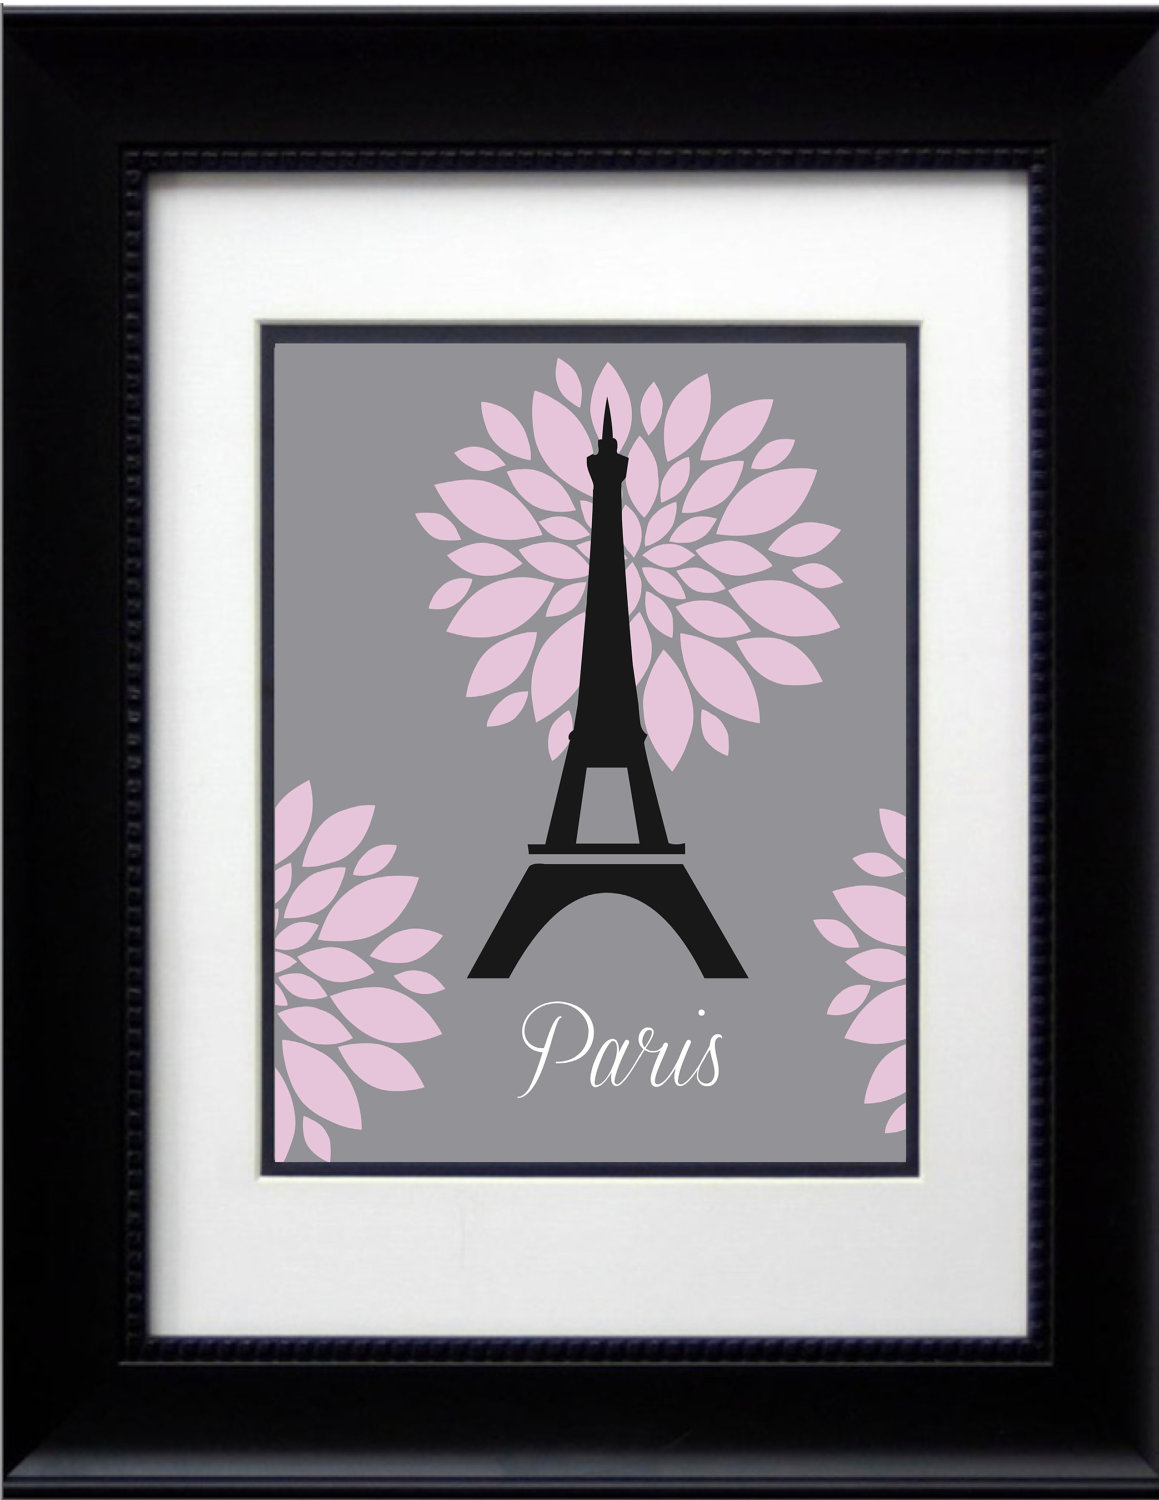 Pictures Wall Decor Ideas Paris Paris Wall Art